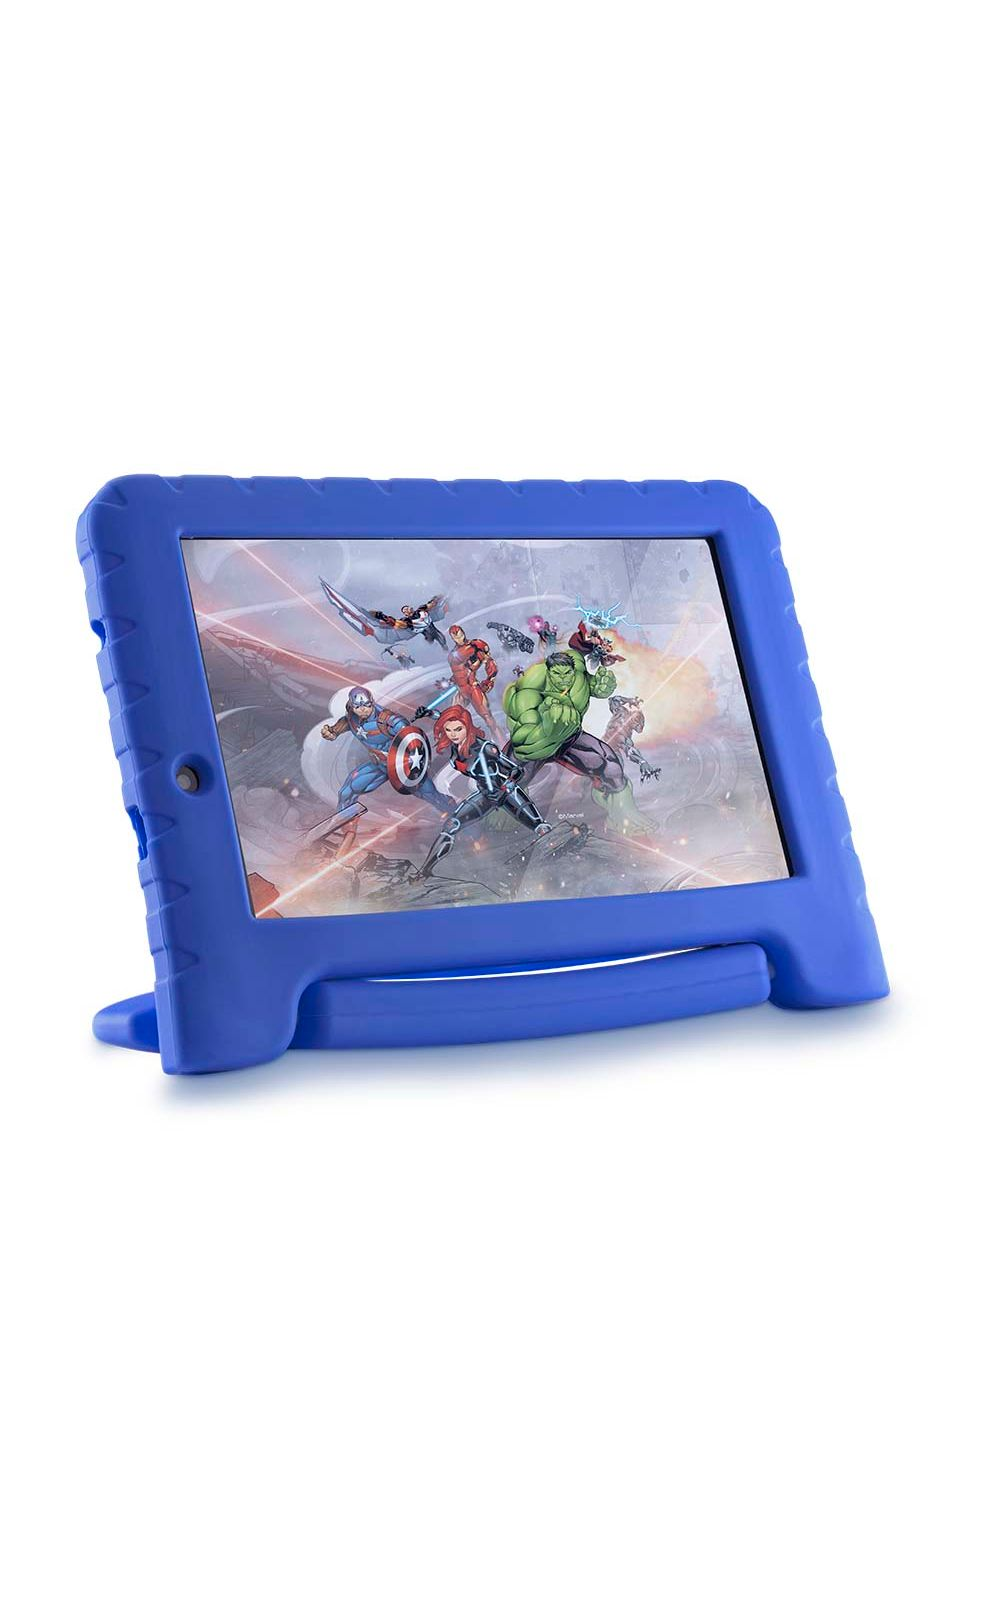 Foto 4 - Tablet Disney Vingadores Plus Wifi 8GB Android 7 Dual Câmera Azul Multilaser - NB280